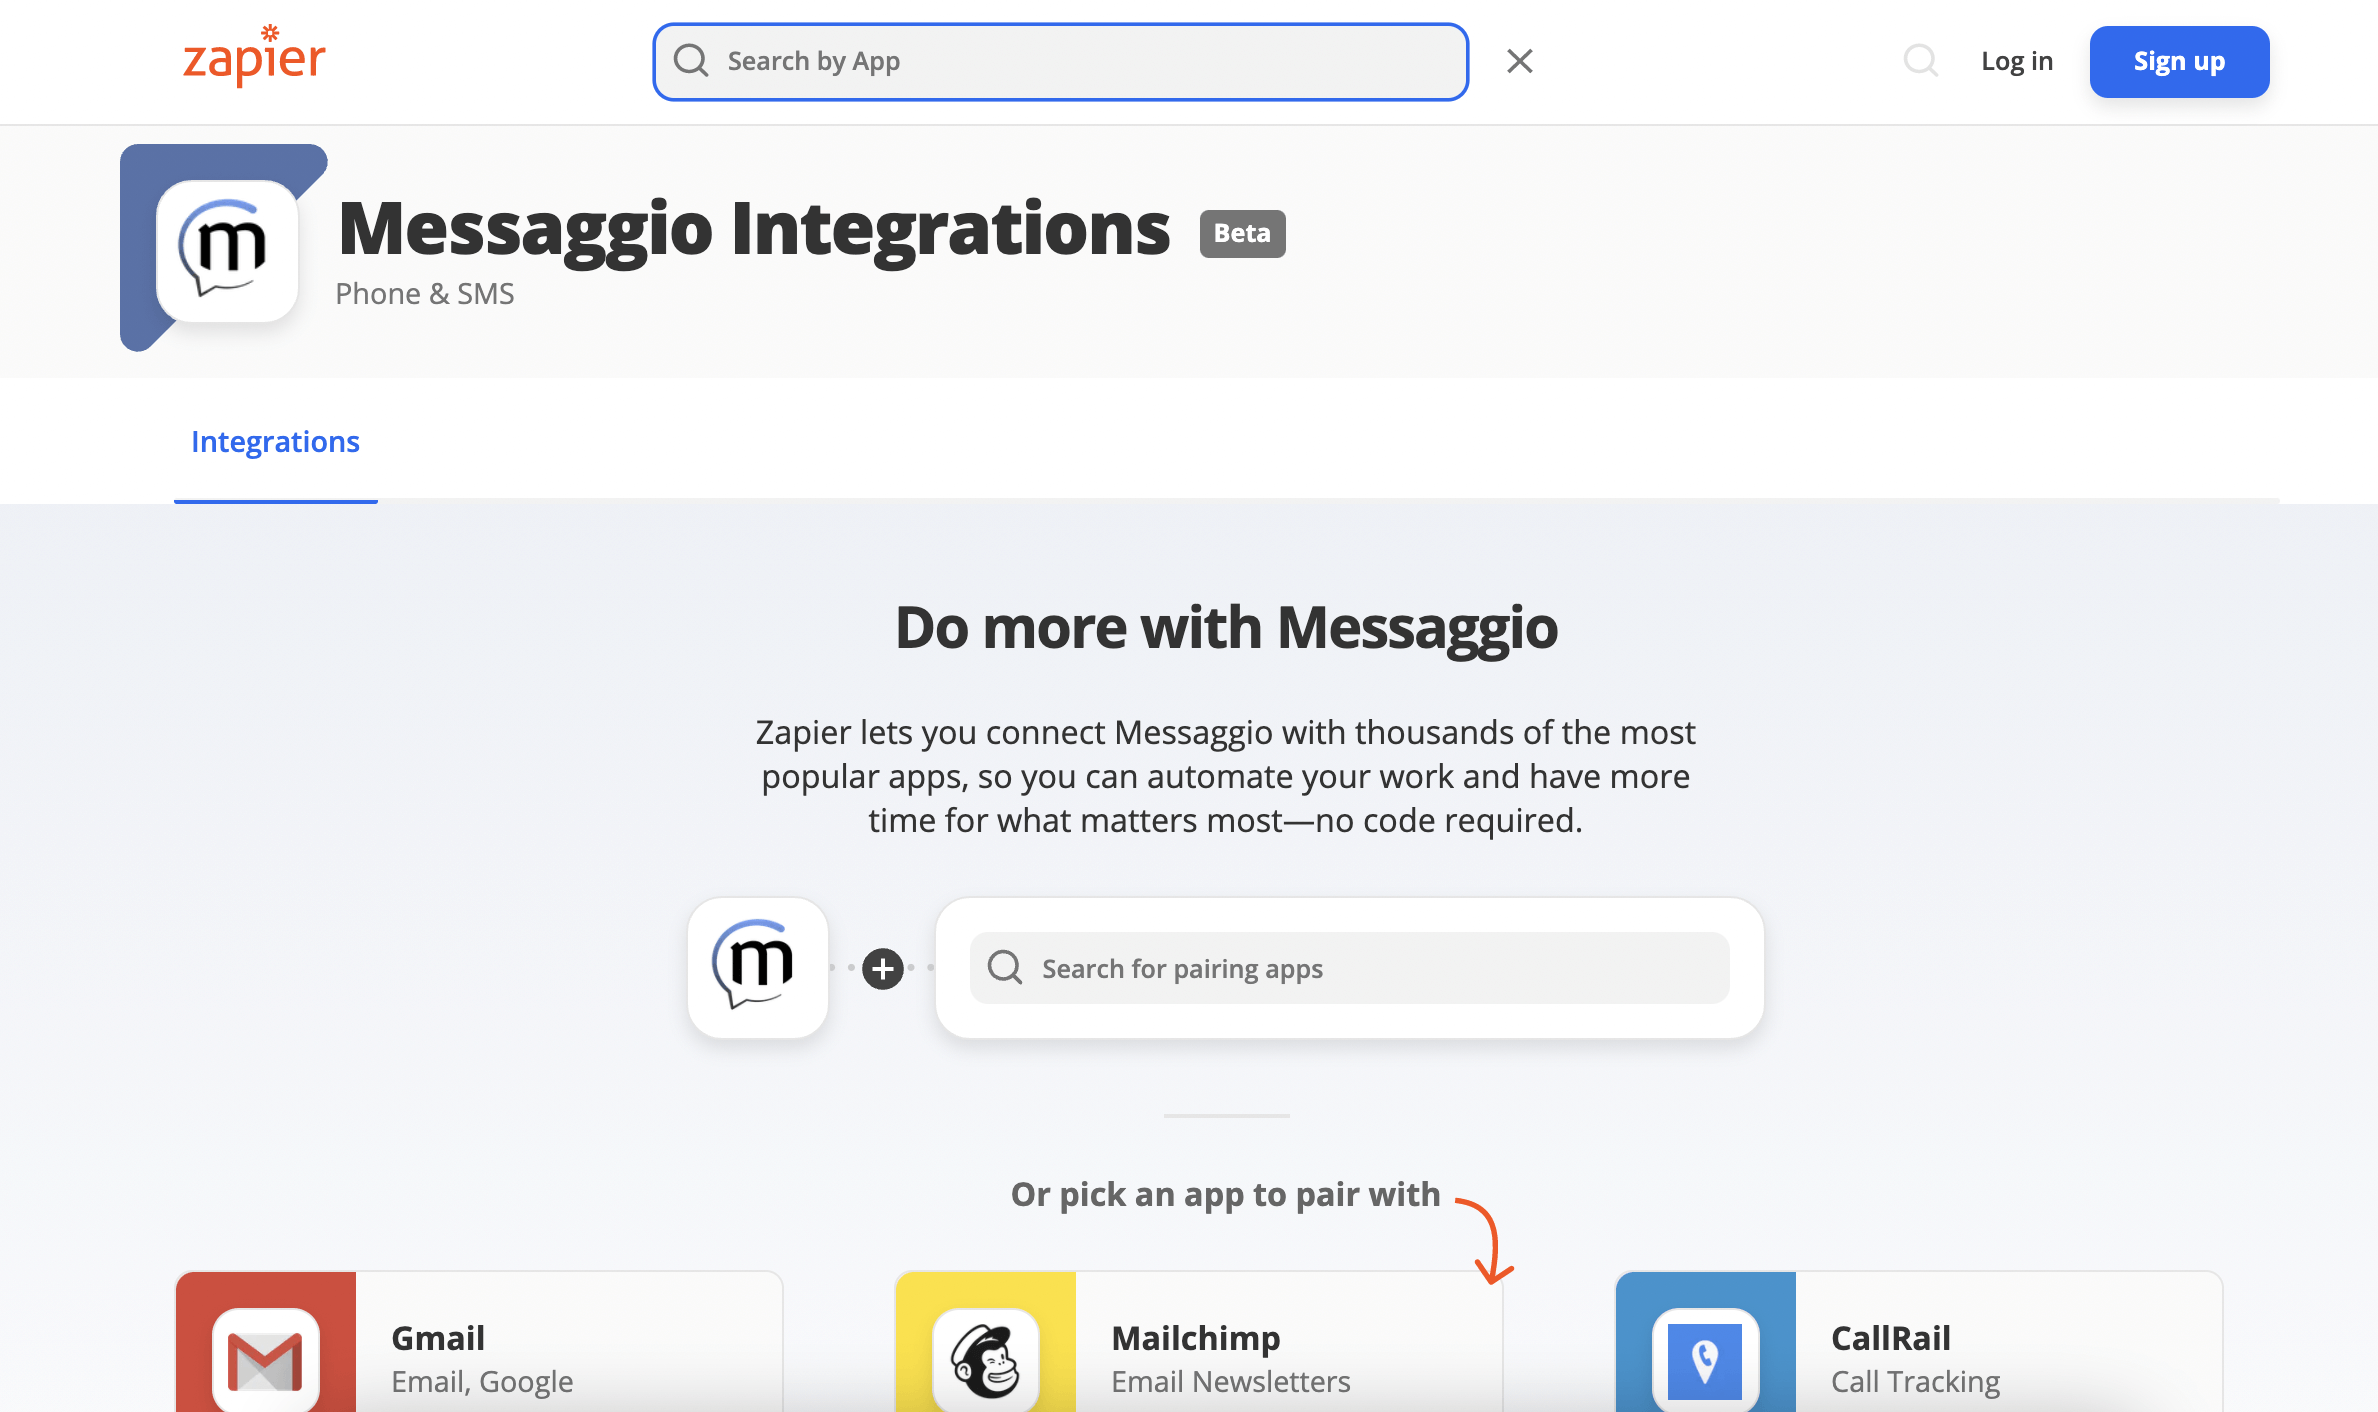 Integrations with Messaggio in Zapier